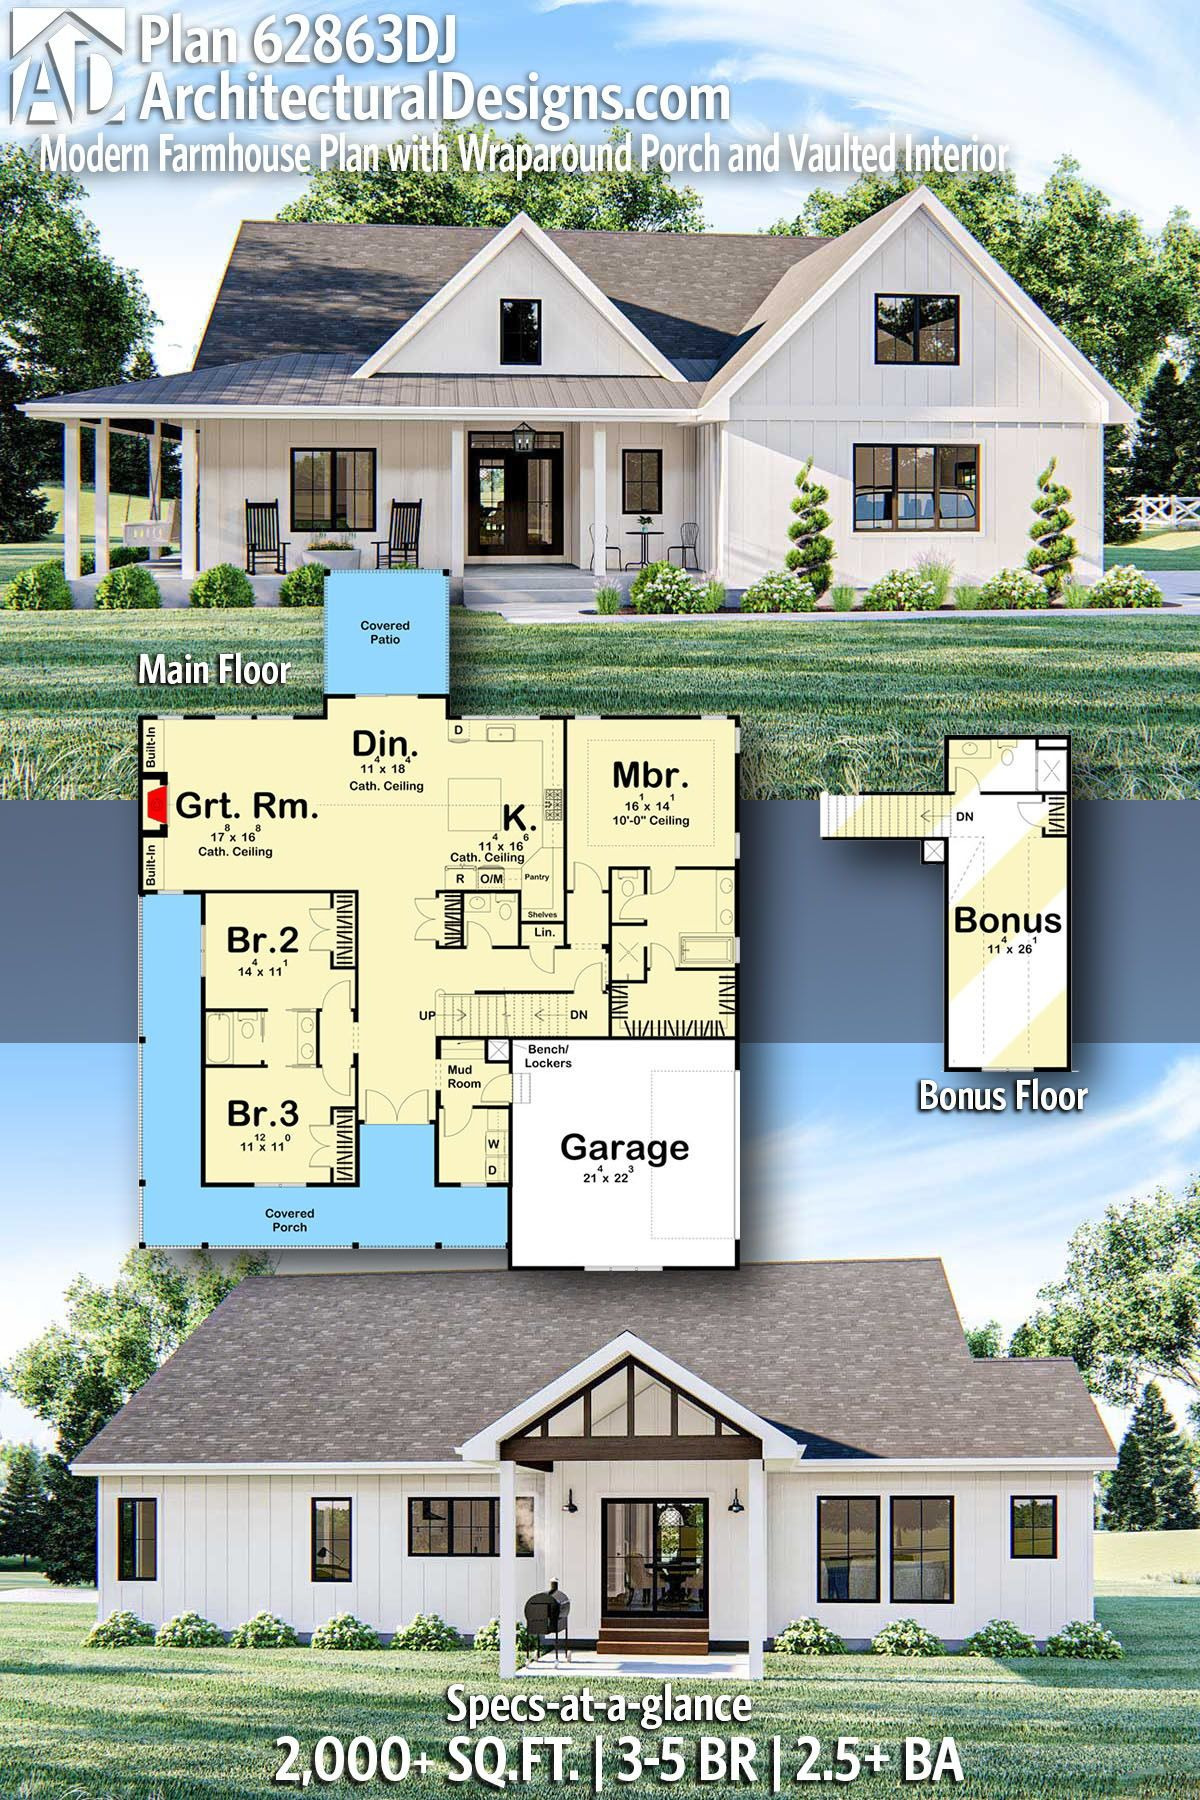 House Plans with Basements and Wrap Around Porch Best Of Plan Dj Modern Farmhouse Plan with Wraparound Porch